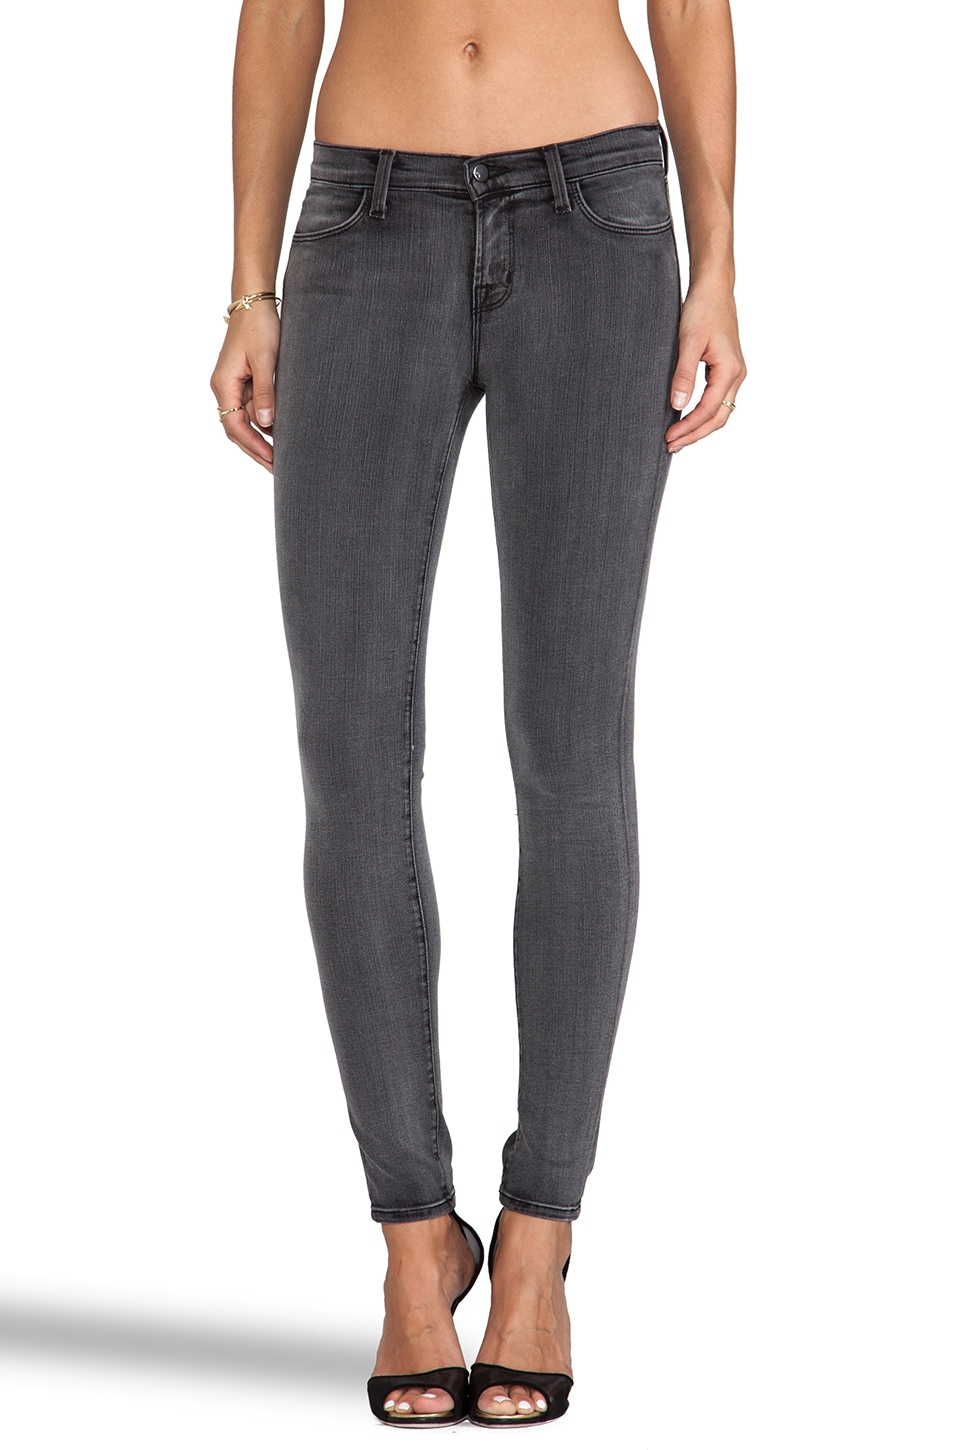 J Brand Midrise Super Skinny in Prose Grey